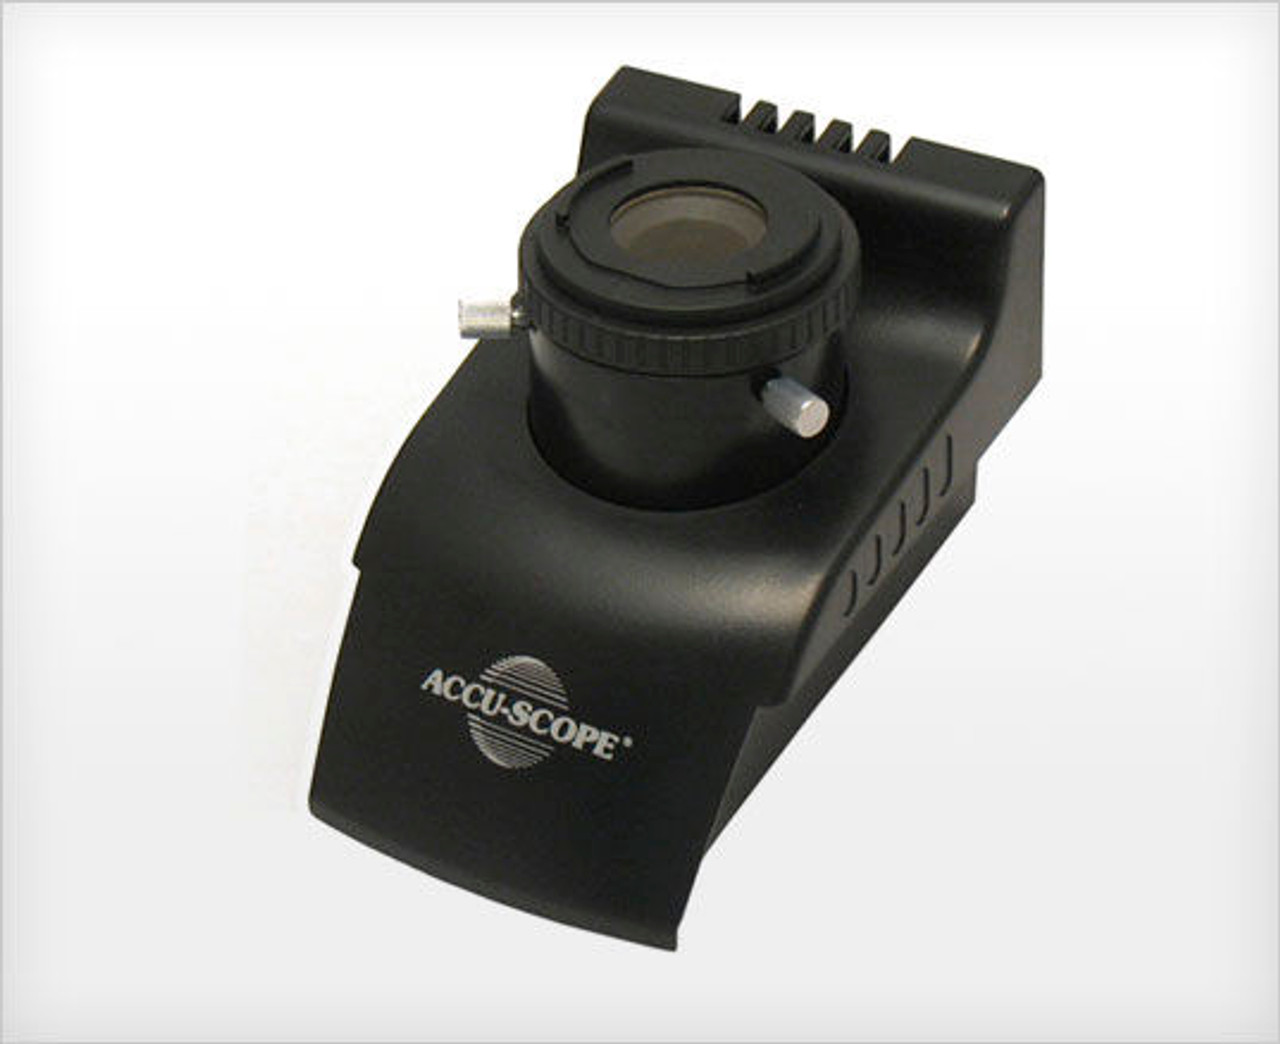 The 3012 microscope series from ACCU-SCOPE features an E-Plan Achromat Infinity objective.